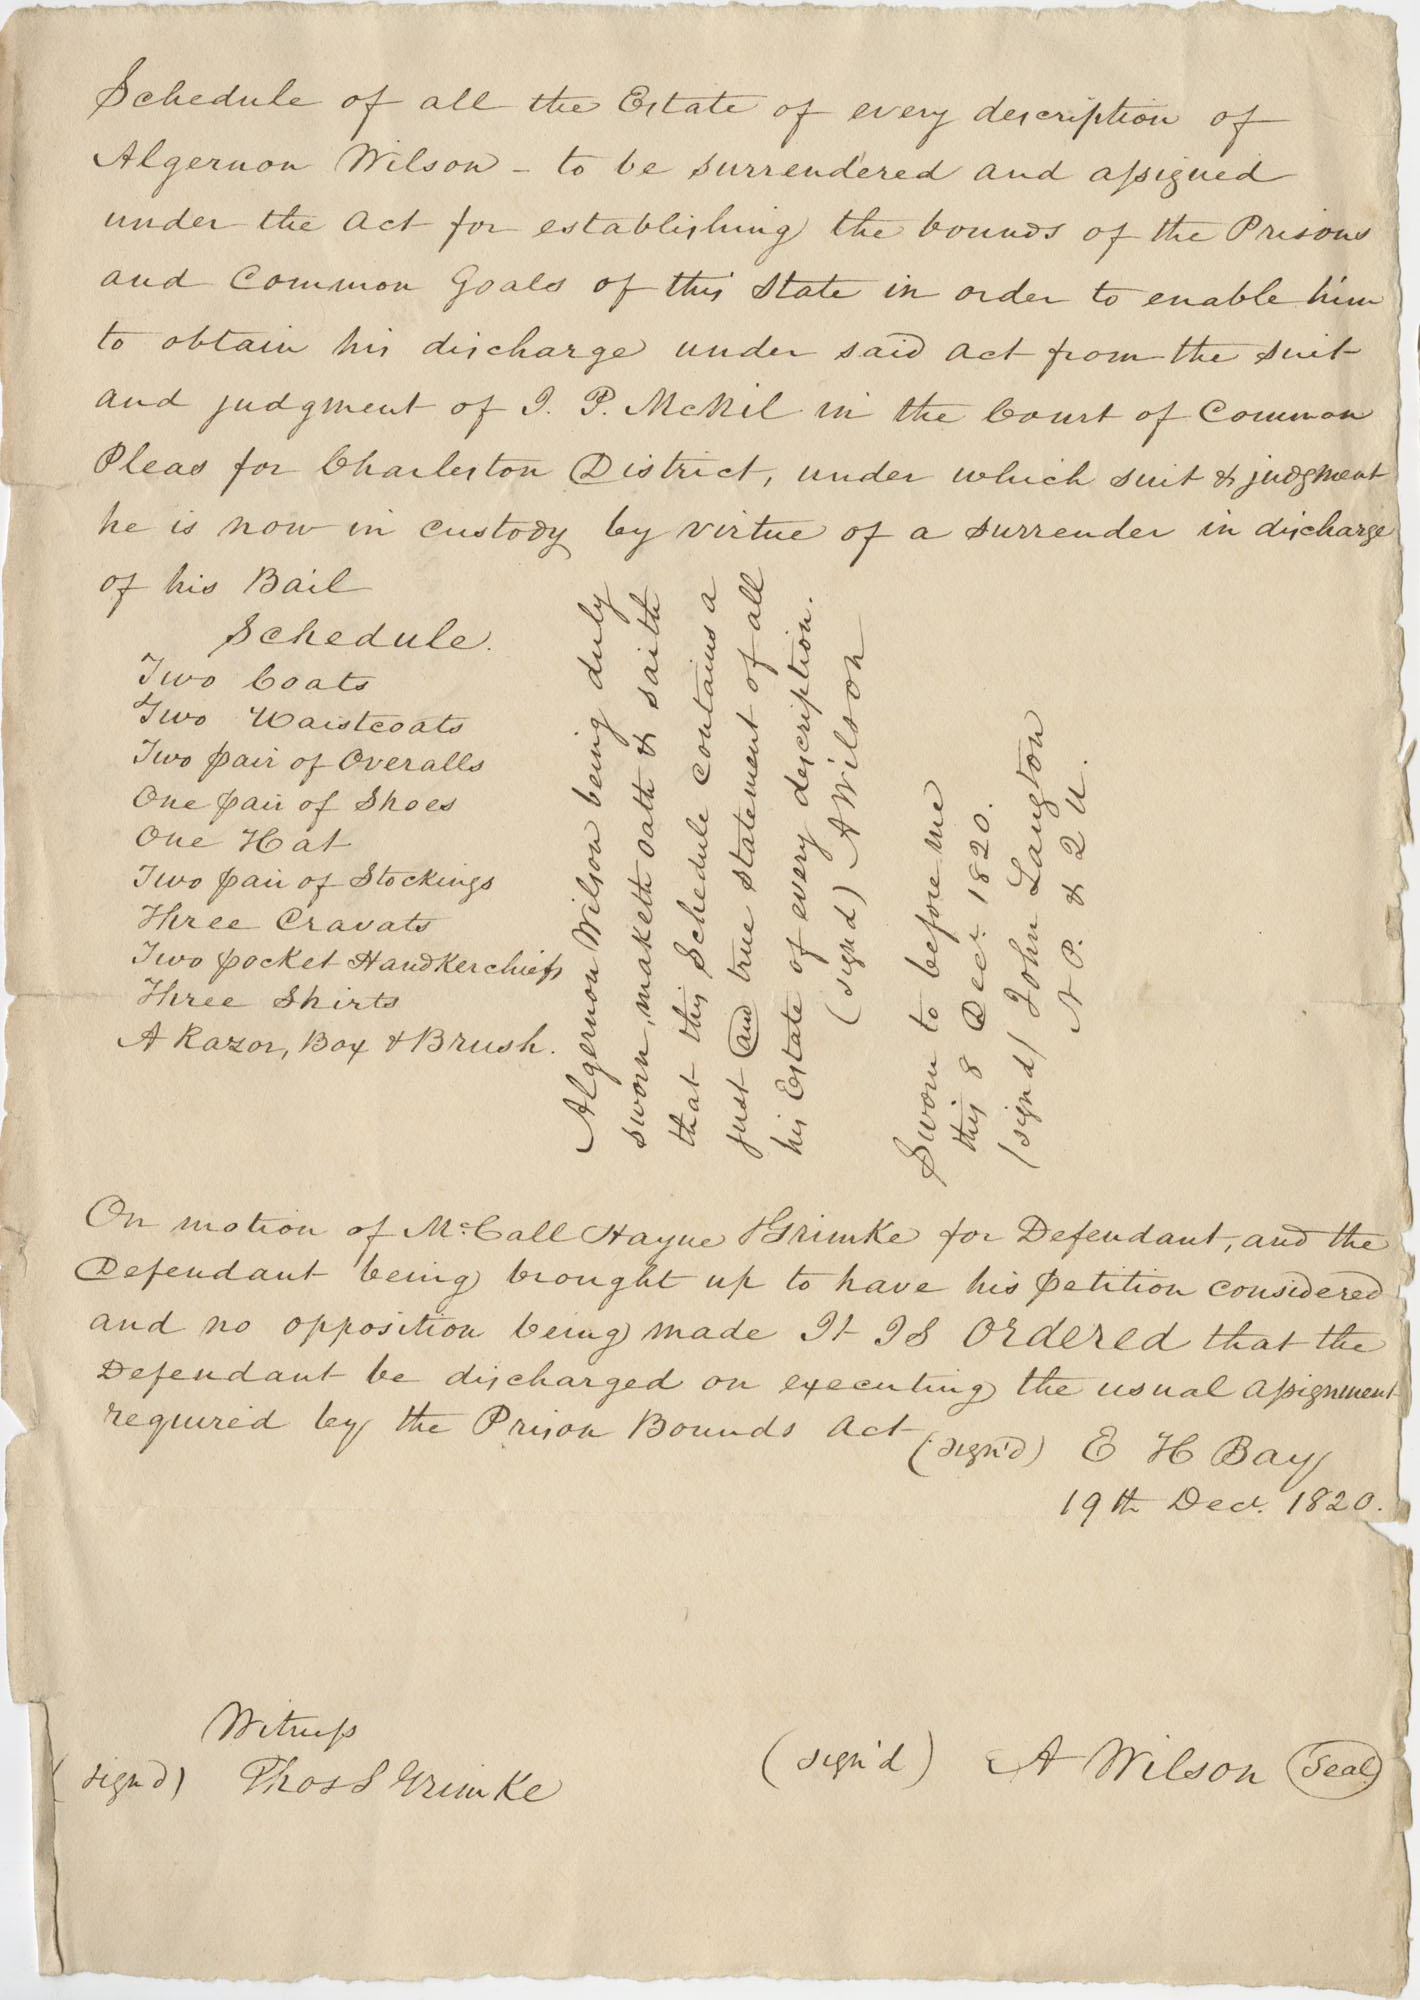 List of items in his estate to be surrendered by Algernon Wilson to ensure his release from jail, December 19, 1820